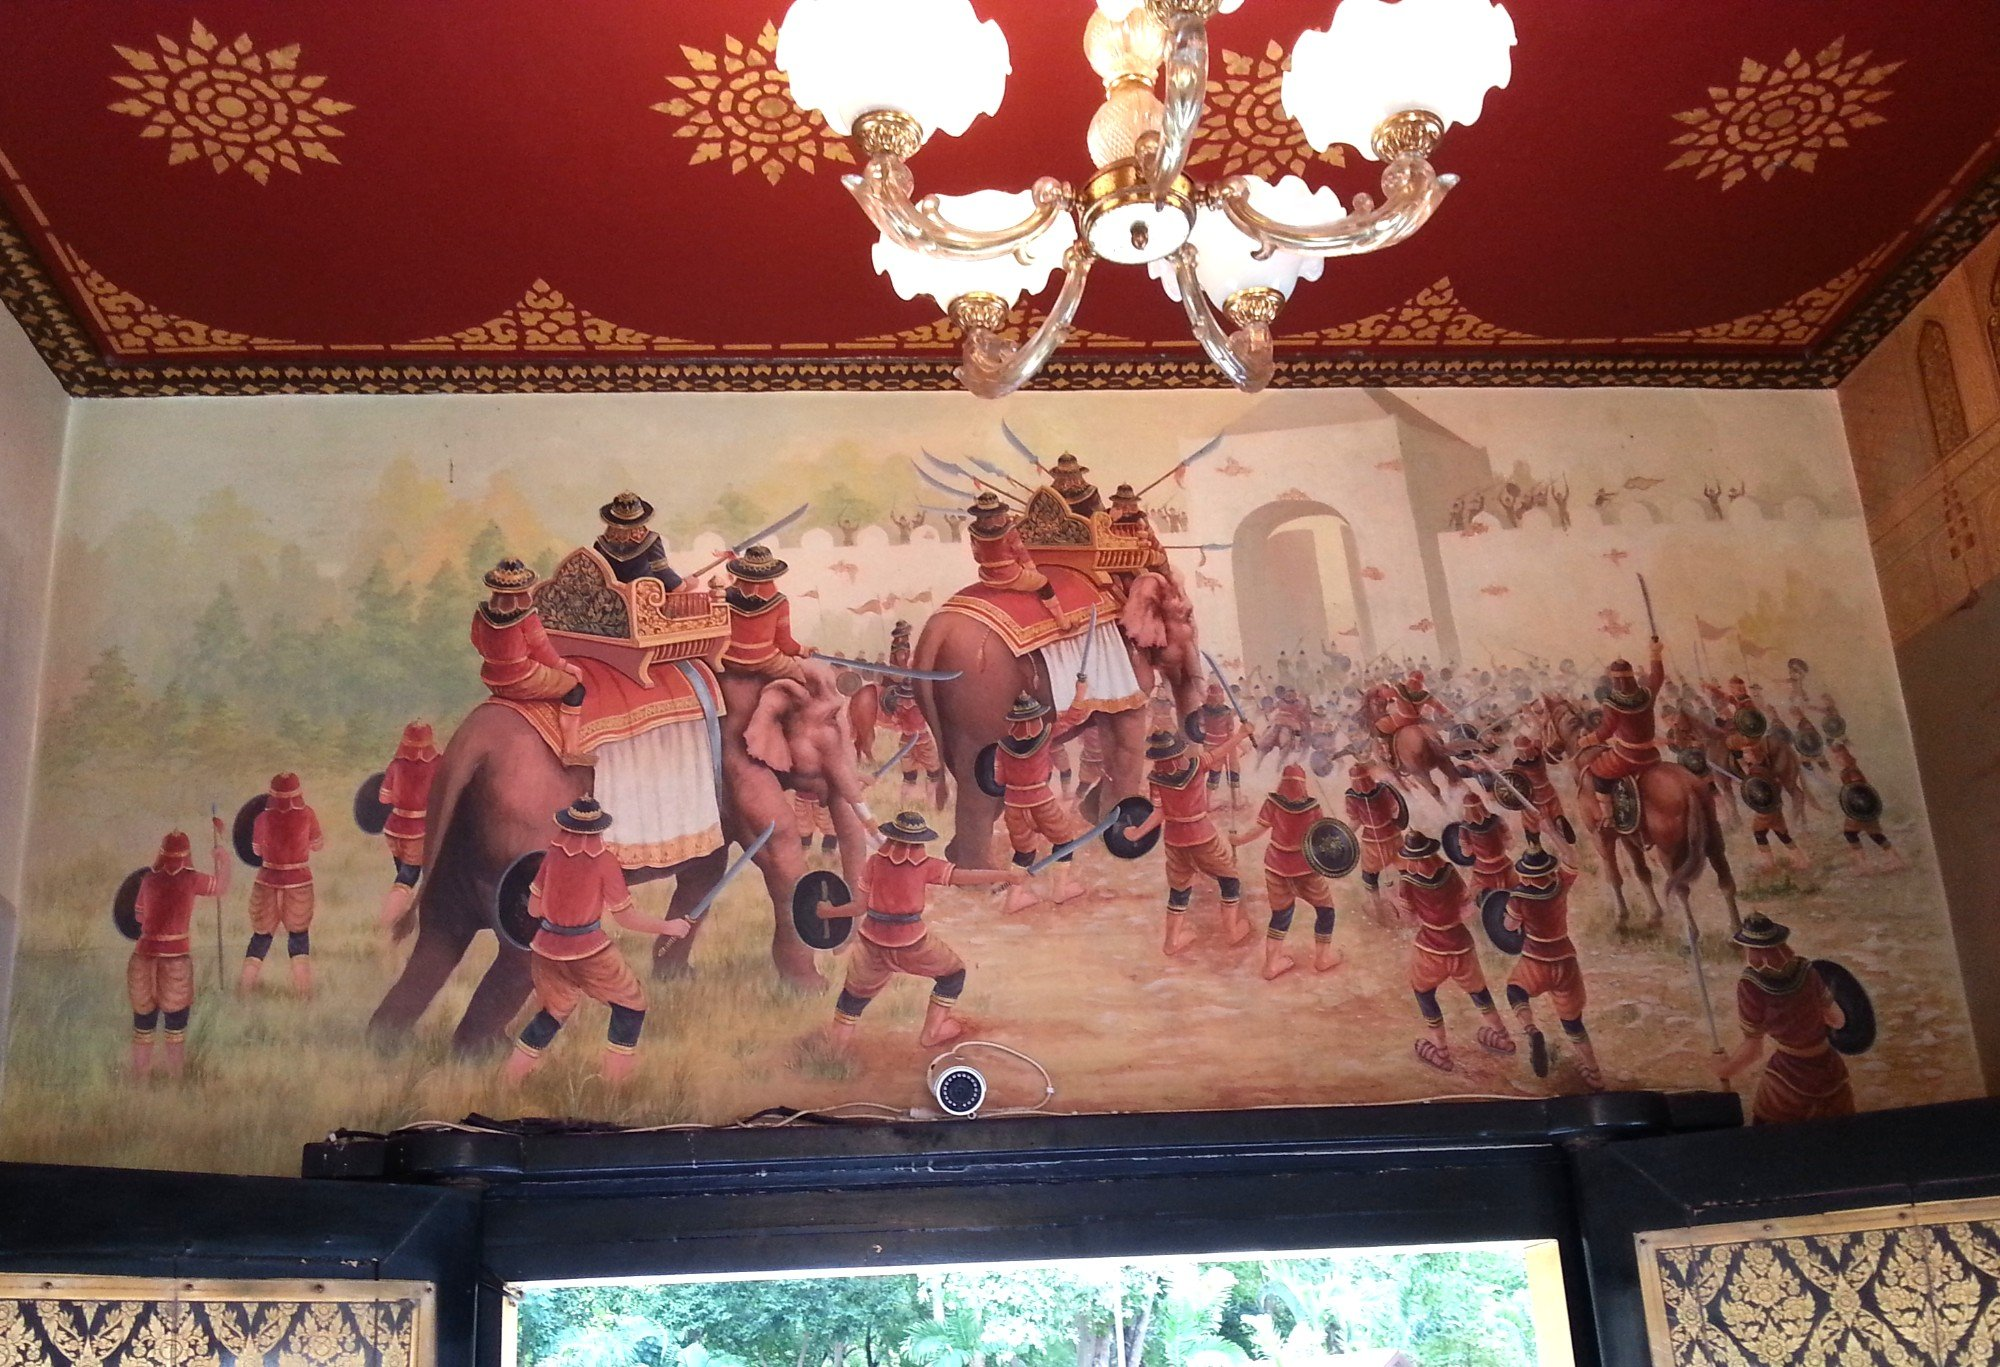 Murals telling the story of King Taksin's life